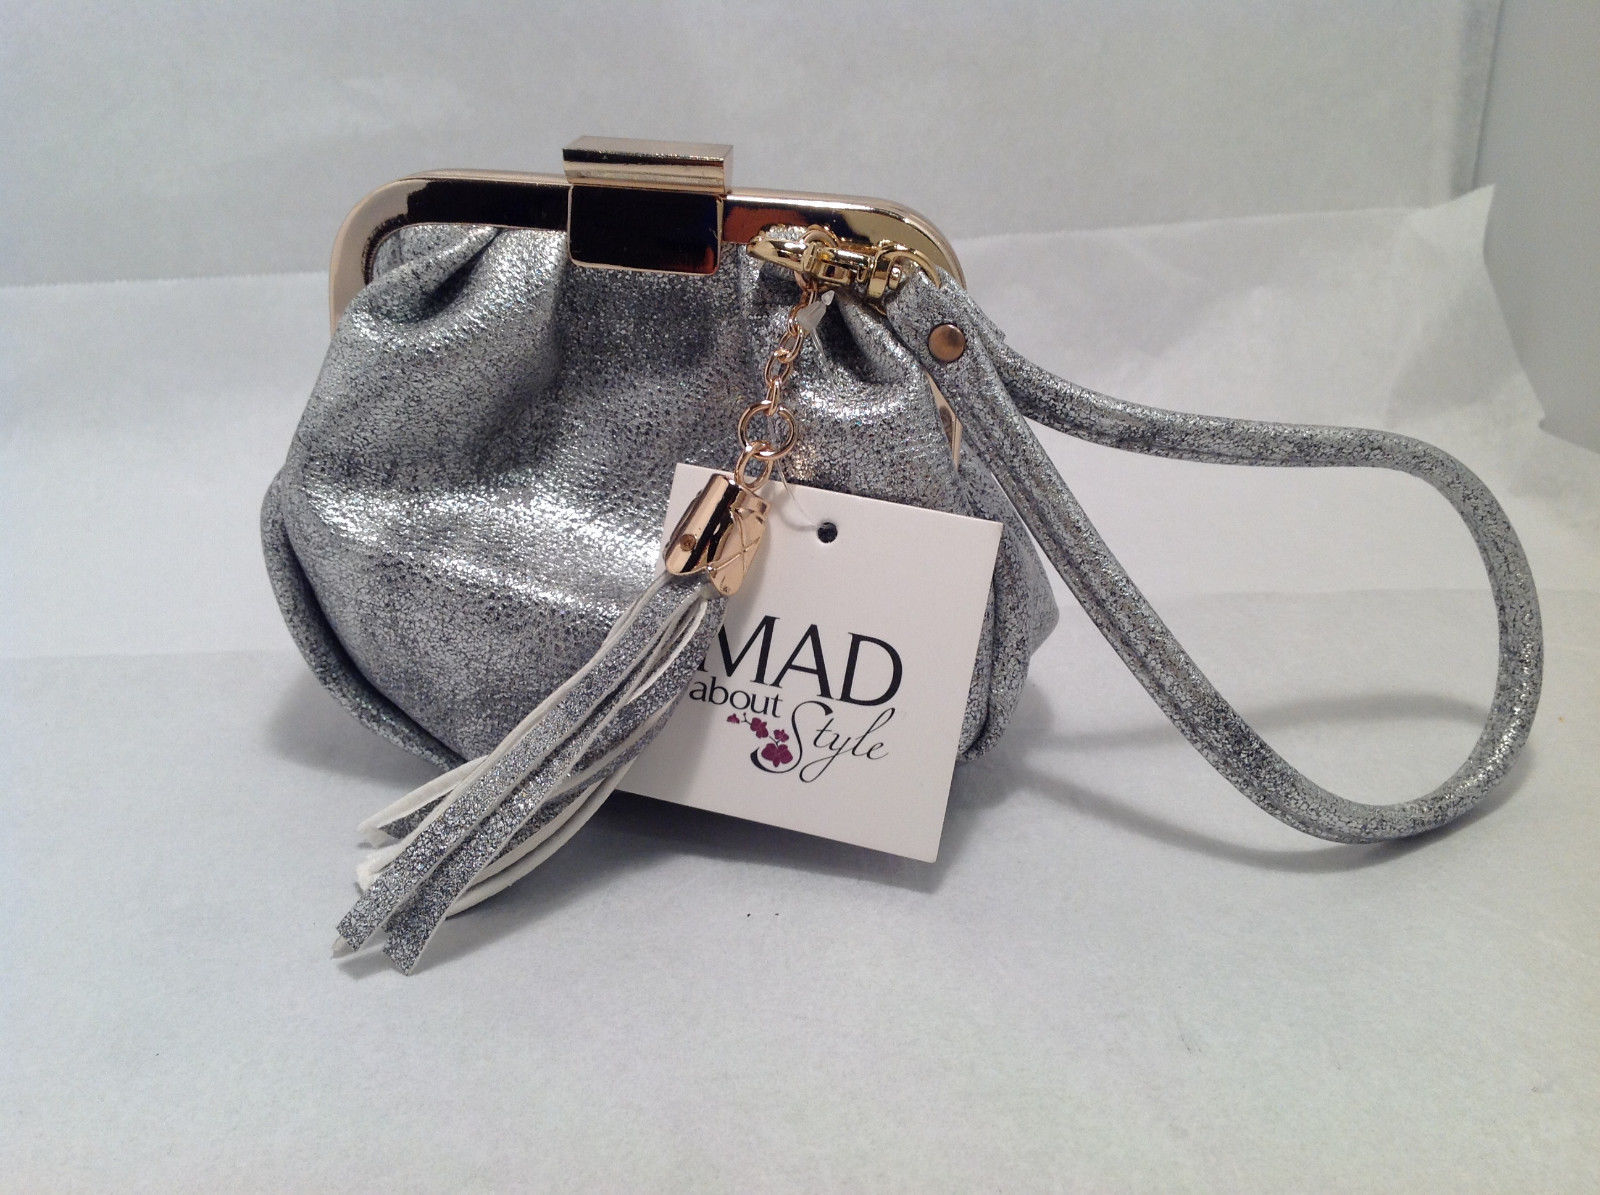 Mad About Style Mini Pouch Bag Change Purse Pebbled Silver w/ Gold Tone Hardware